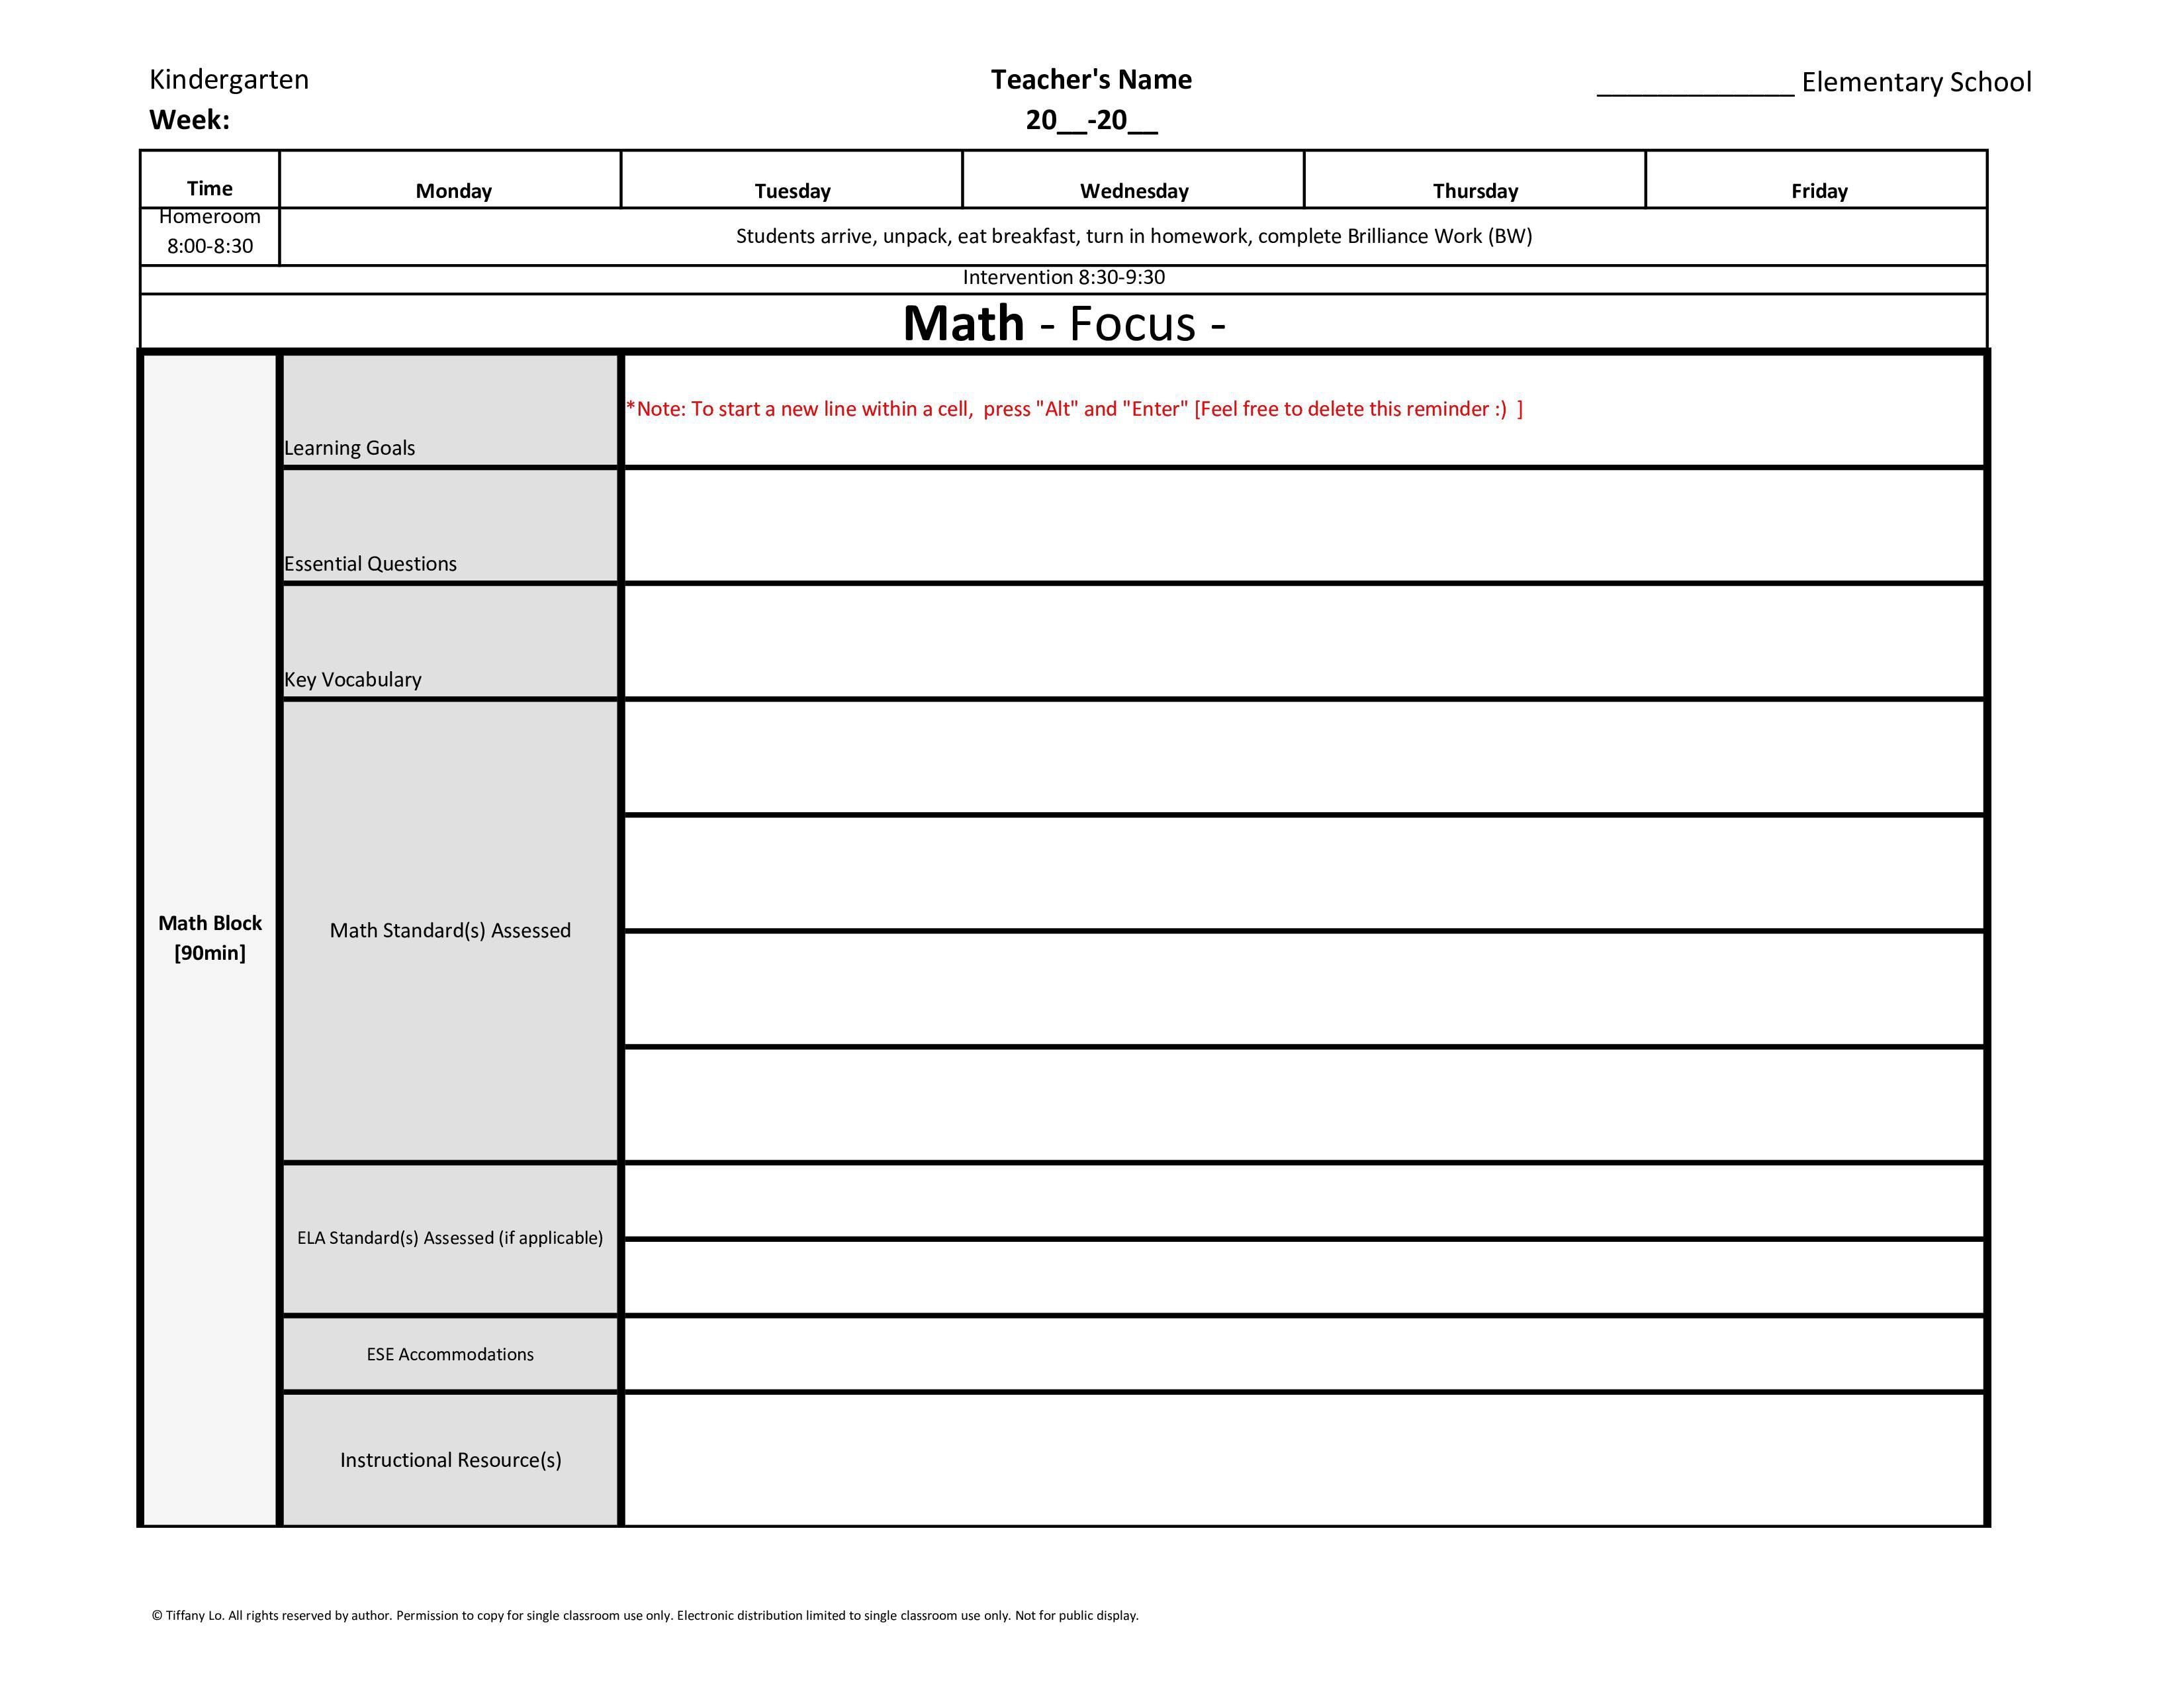 004 Frightening Weekly Lesson Plan Template Inspiration  Blank Free High School Danielson Google DocFull